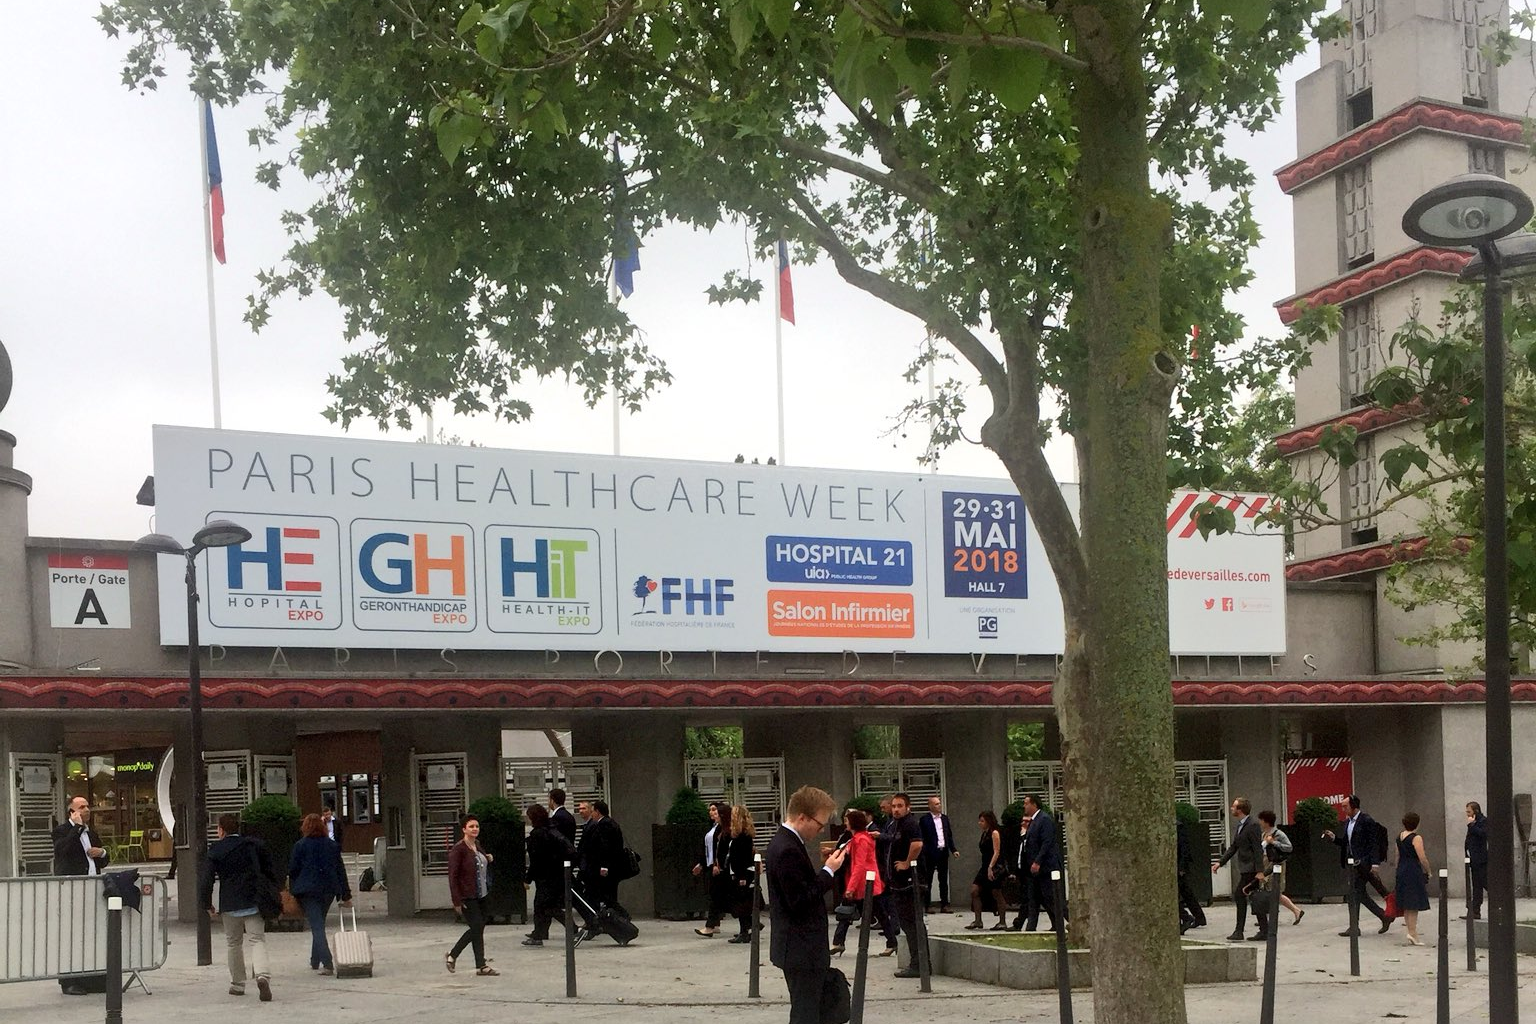 L'équipe libheros à la Paris Healthcare Week !